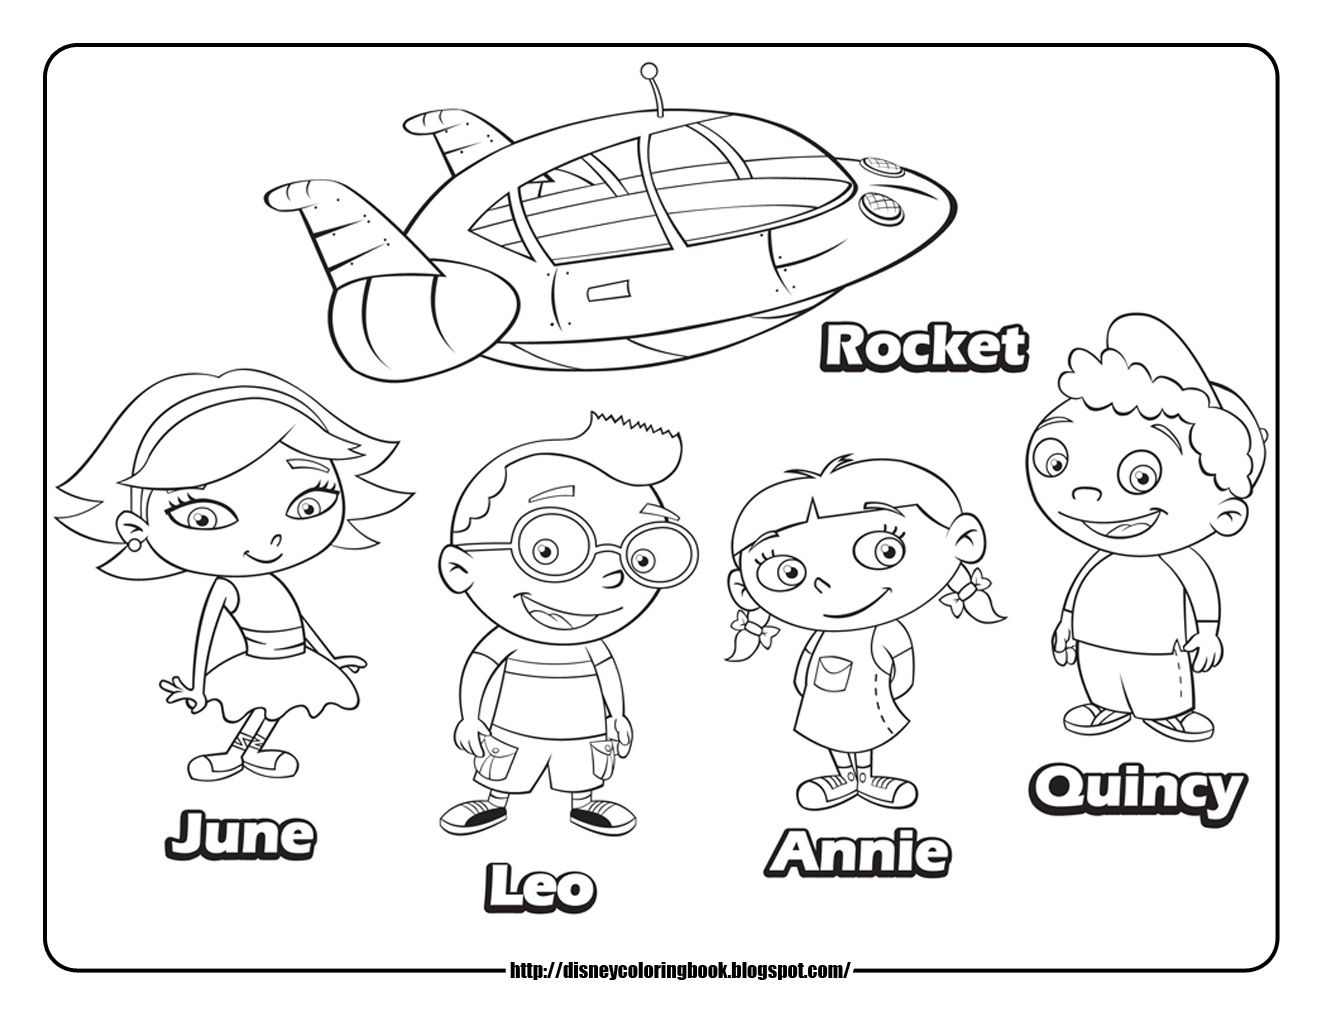 pin by lmi kids disney on little einsteins les petits einstein